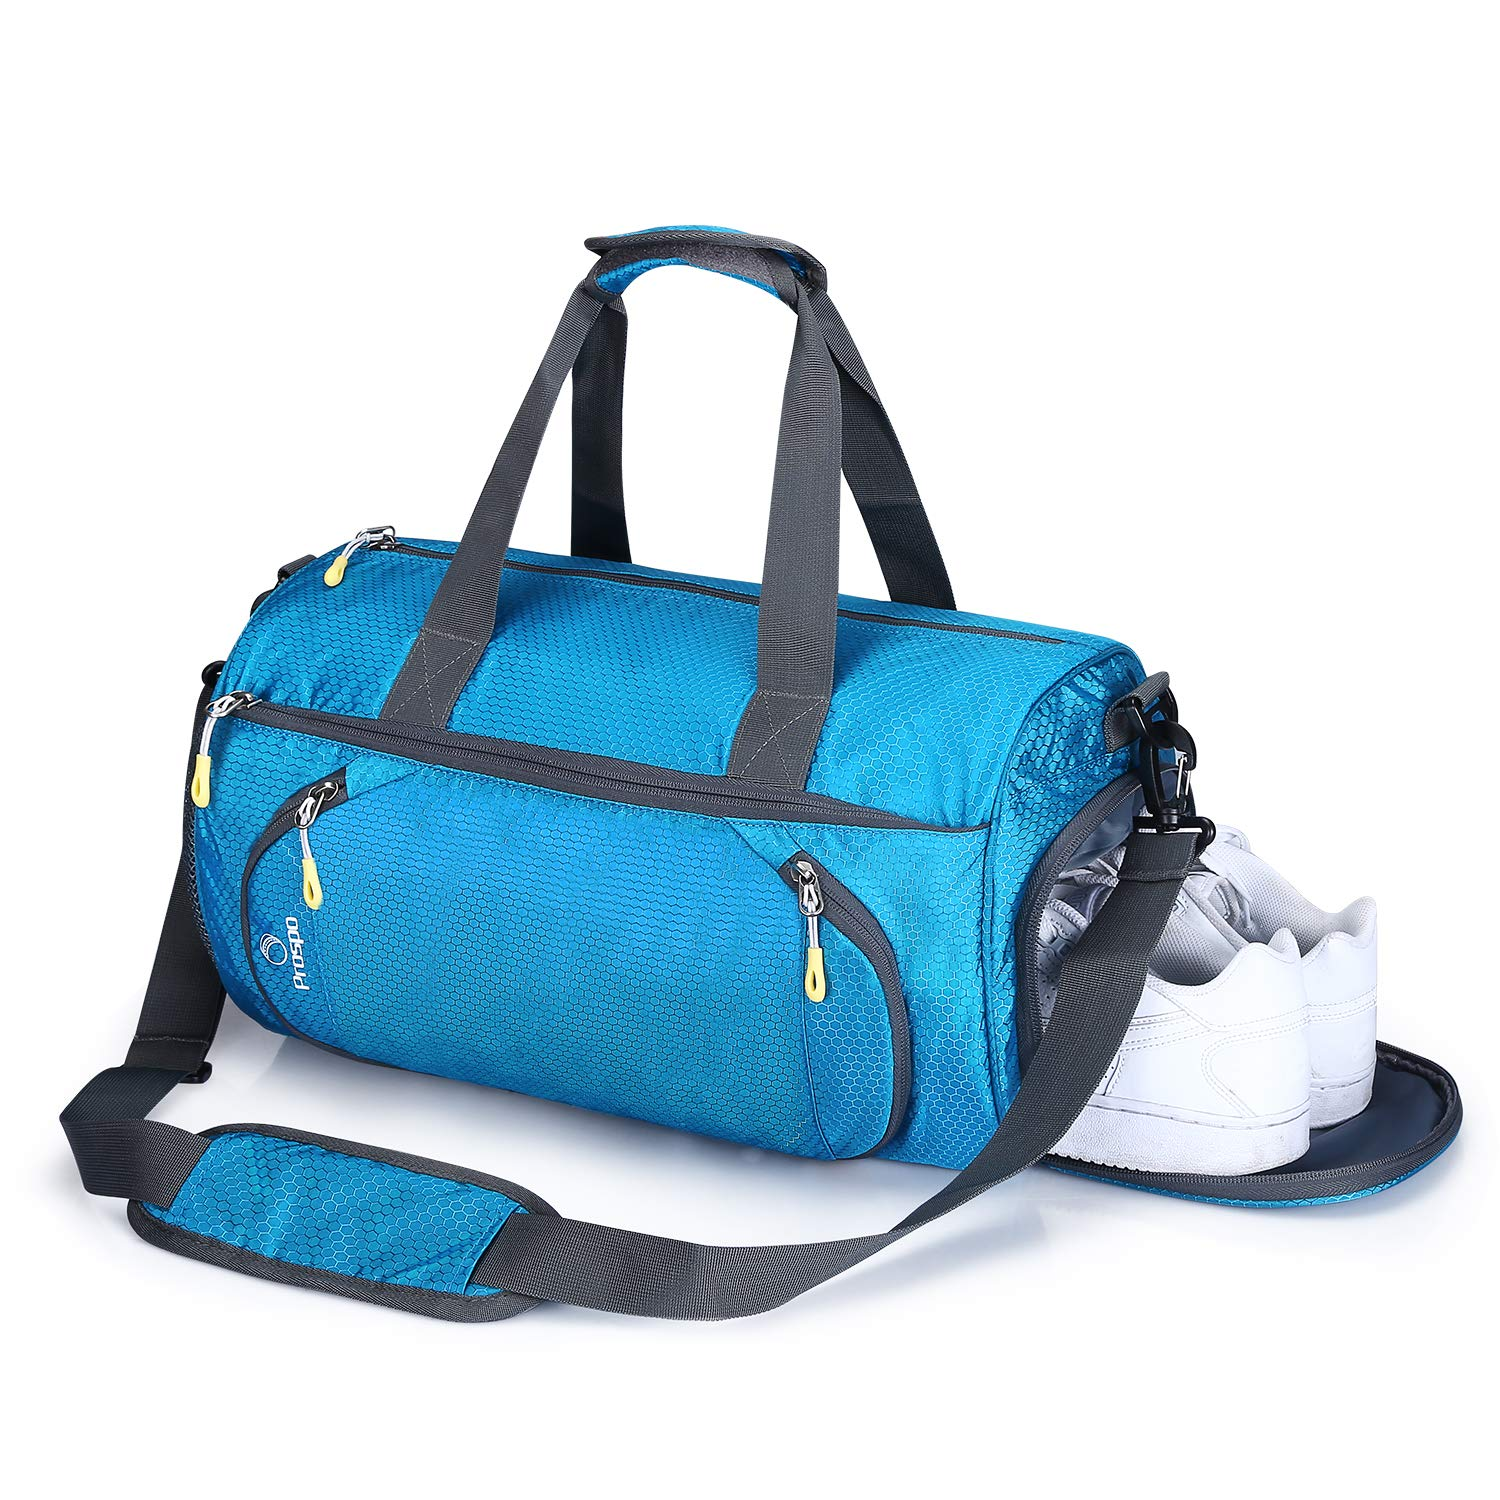 7a469986a652 Prospo Small Duffel Bag Lightweight Gym Bag Weekend Bag Travel Luggage Tote  Bag for Women Men Hand Pack with Shoes Compartment for Sport Outdoors(Blue)